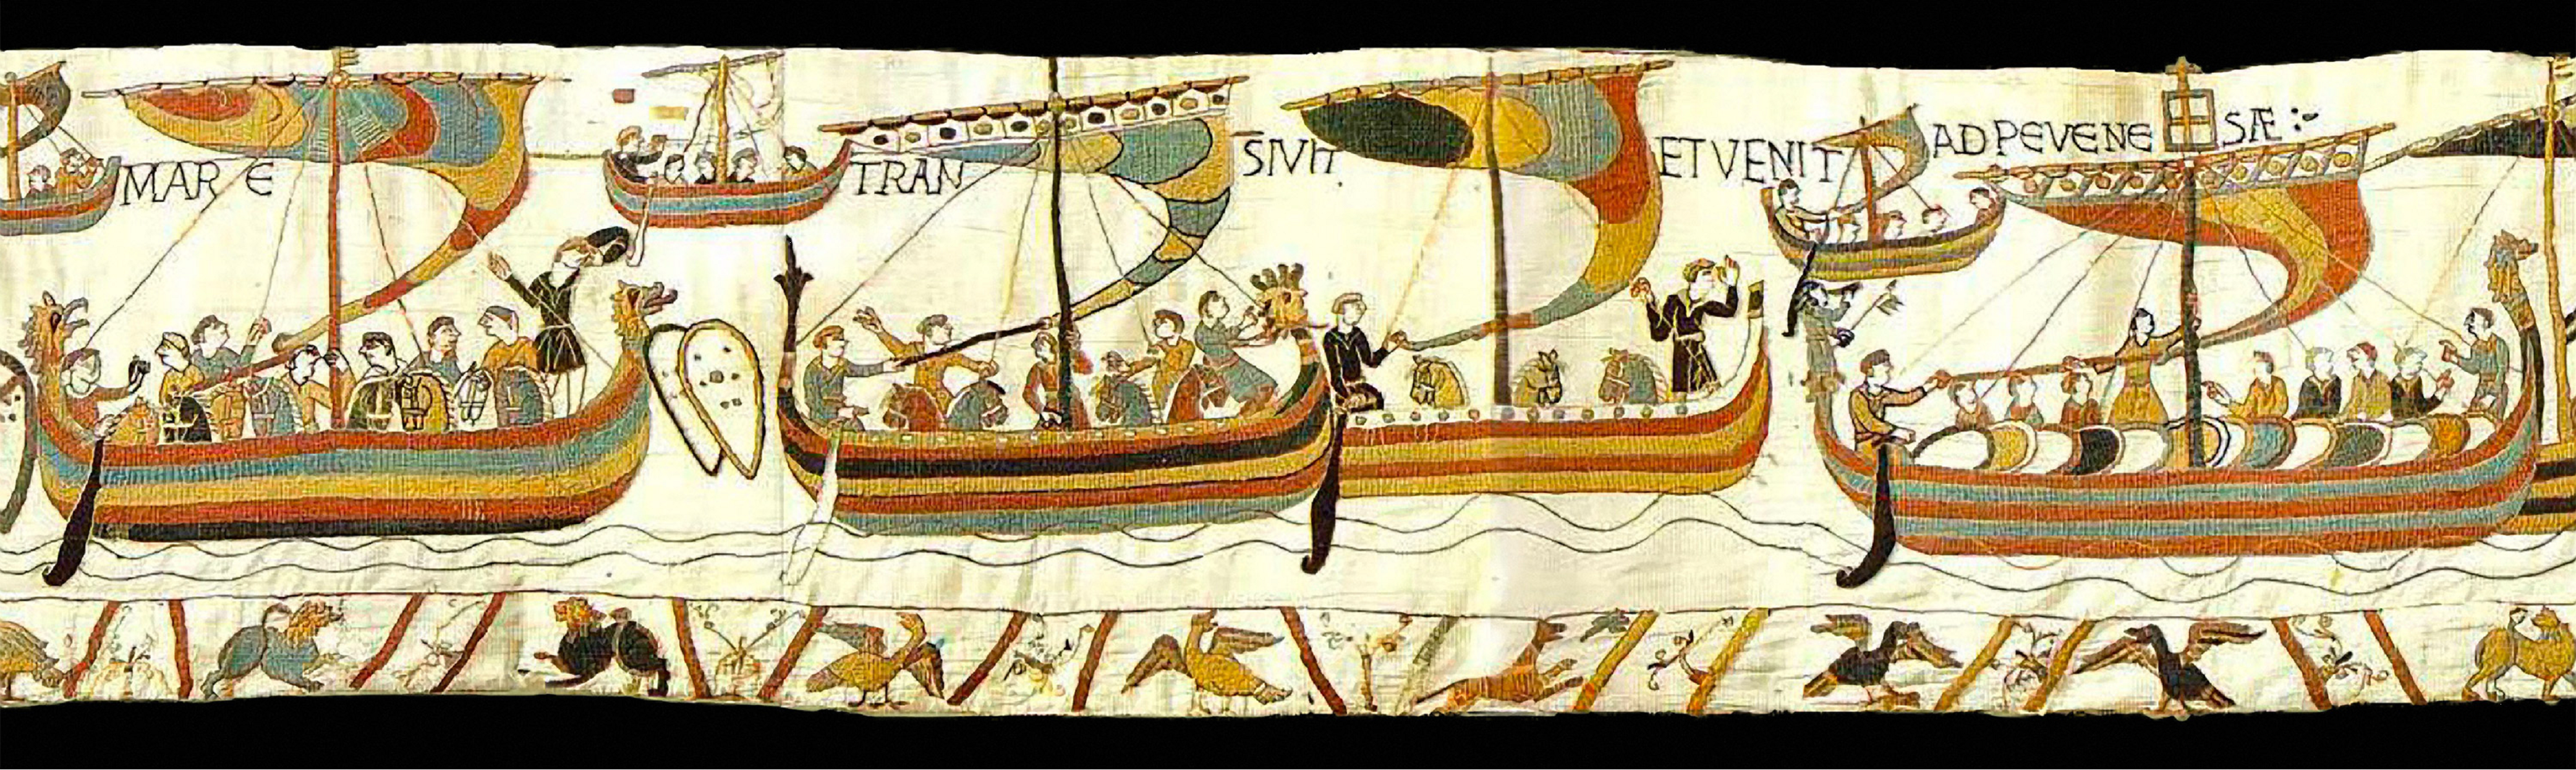 an introduction to the significance of the bayeux tapestry The bayeux tapestry is actually an embroidered wall hanging that illustrates  events  bayeux tapestry where it is depicted as a heavenly sanctioned and  just result of  overview this 10-minute question asked students to identify the  bayeux  students were asked to question the function and purpose of the work  of art,.